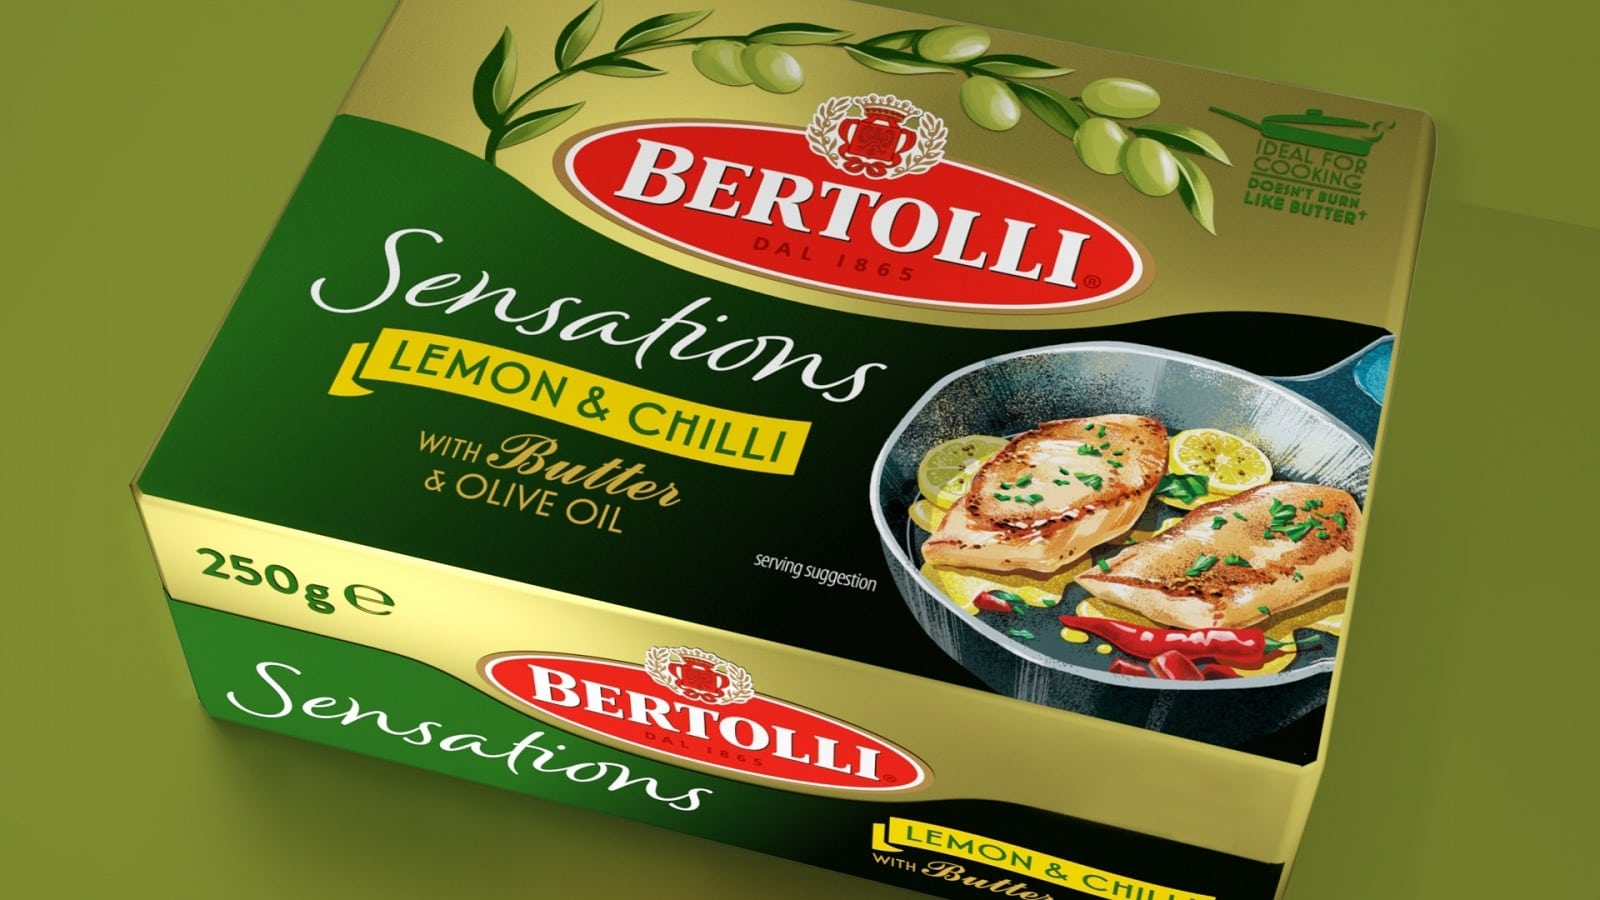 Bertolli Sensations packaging design by Slice Design